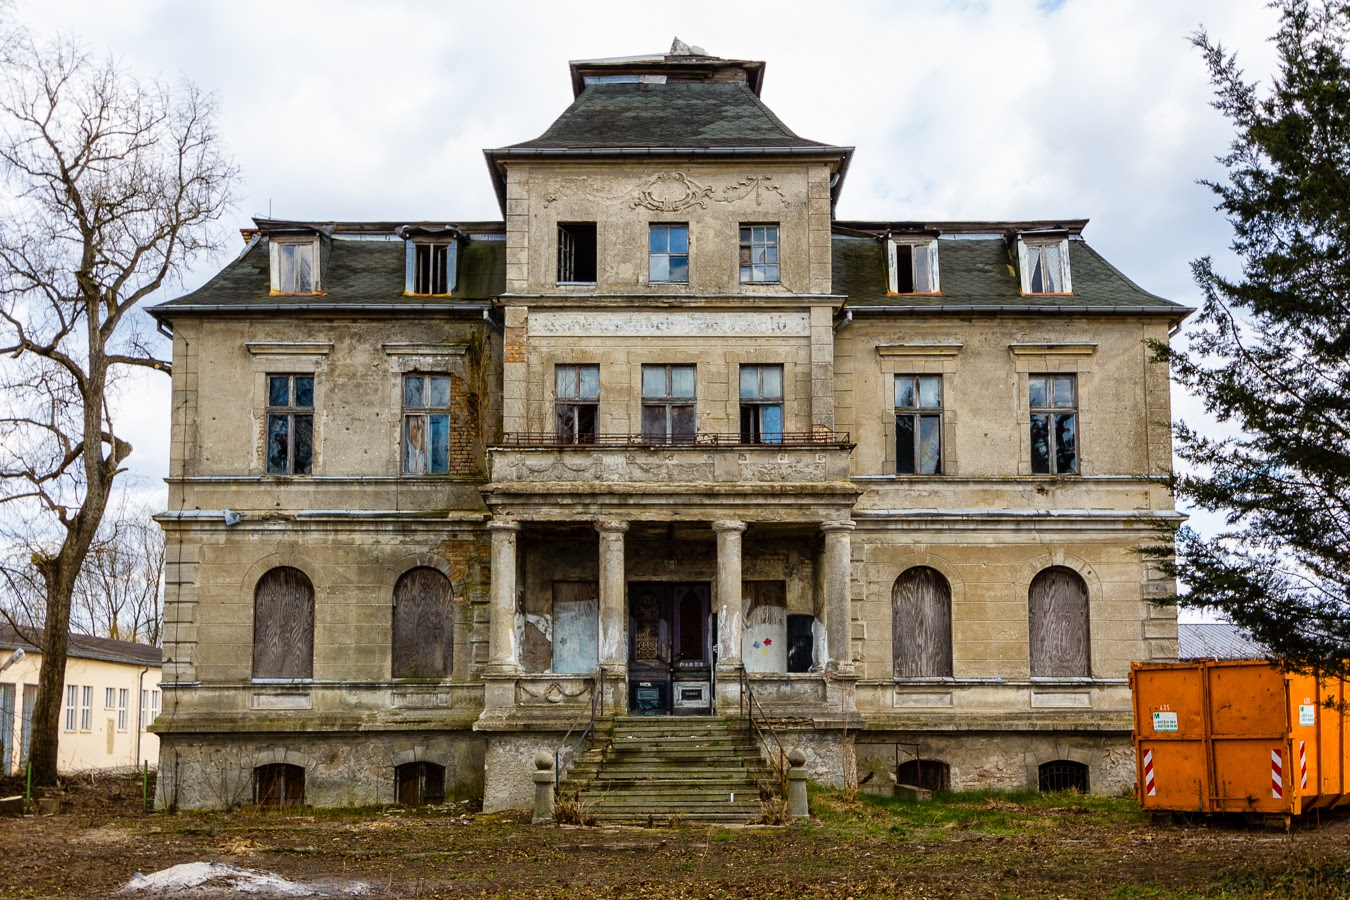 Richter's villa: The forgotten farmhouse | Abandoned Berlin